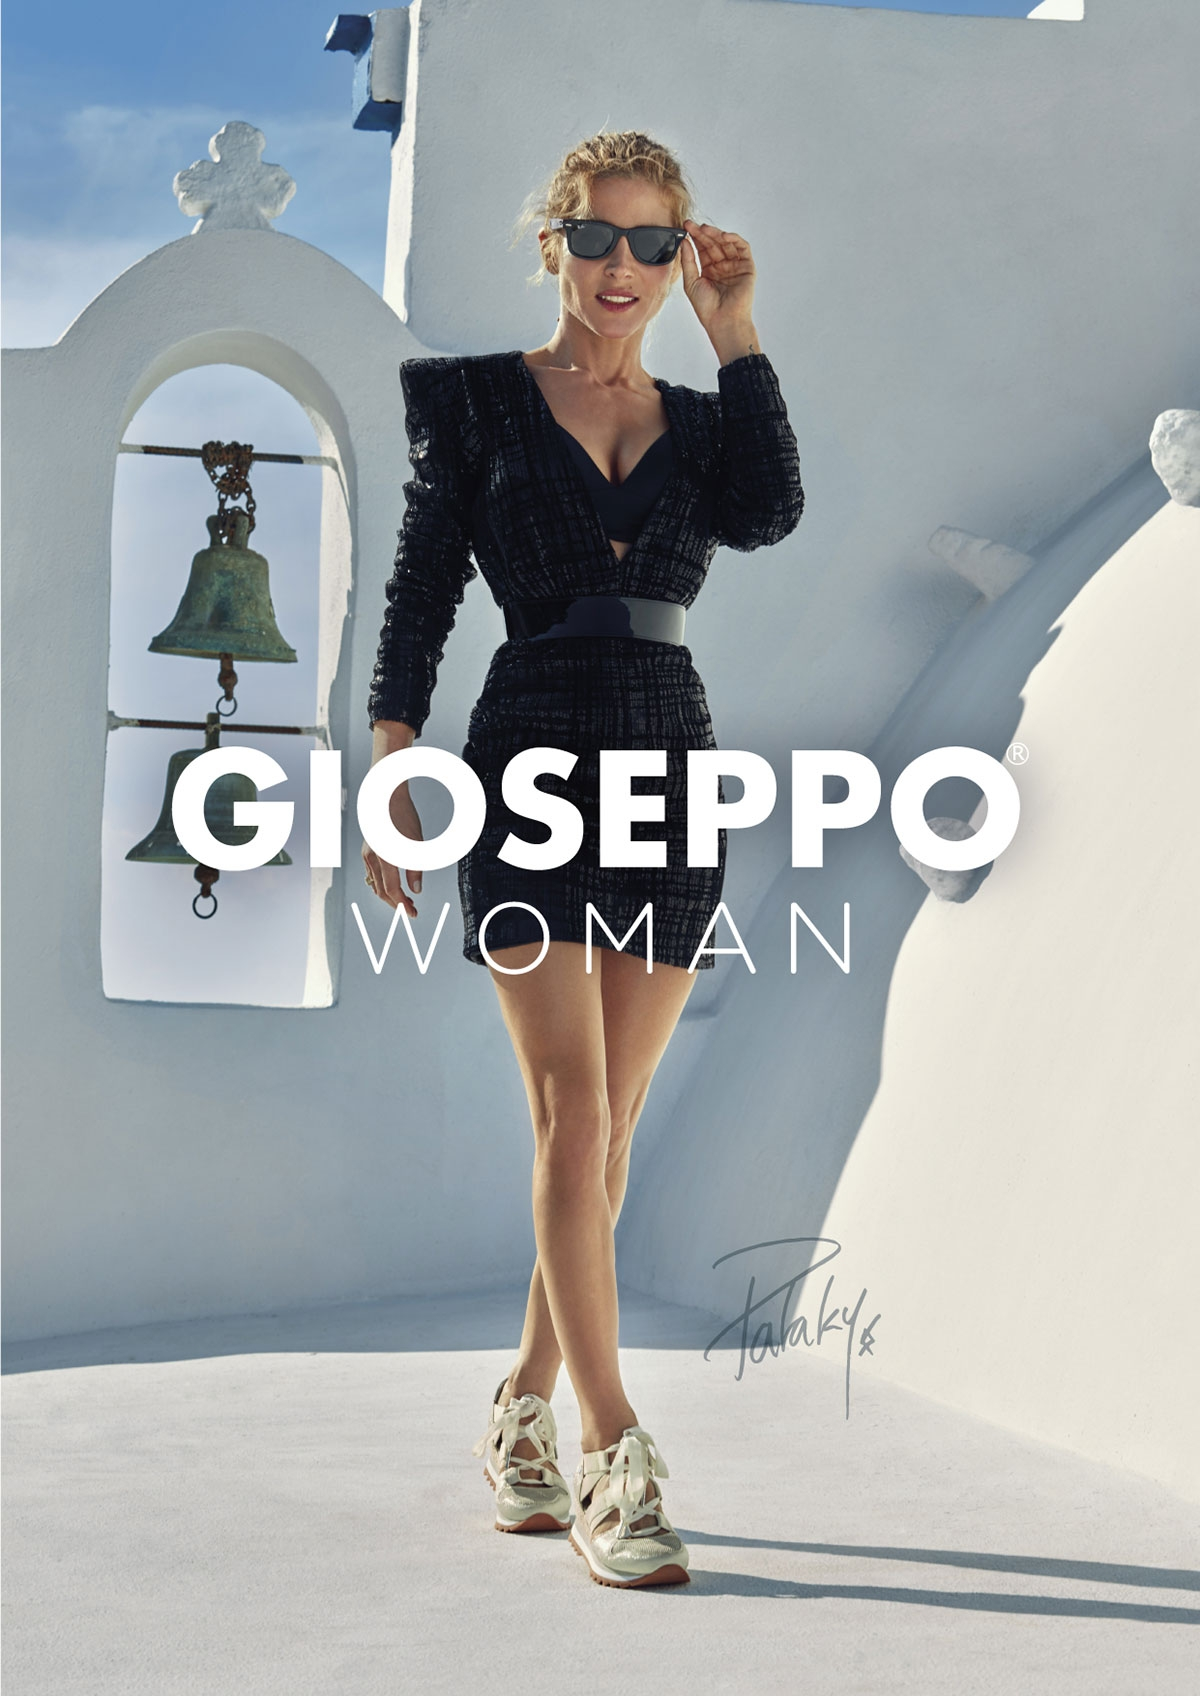 Gioseppo-zapatillas blancoo with openings and wedge mujer Etienne